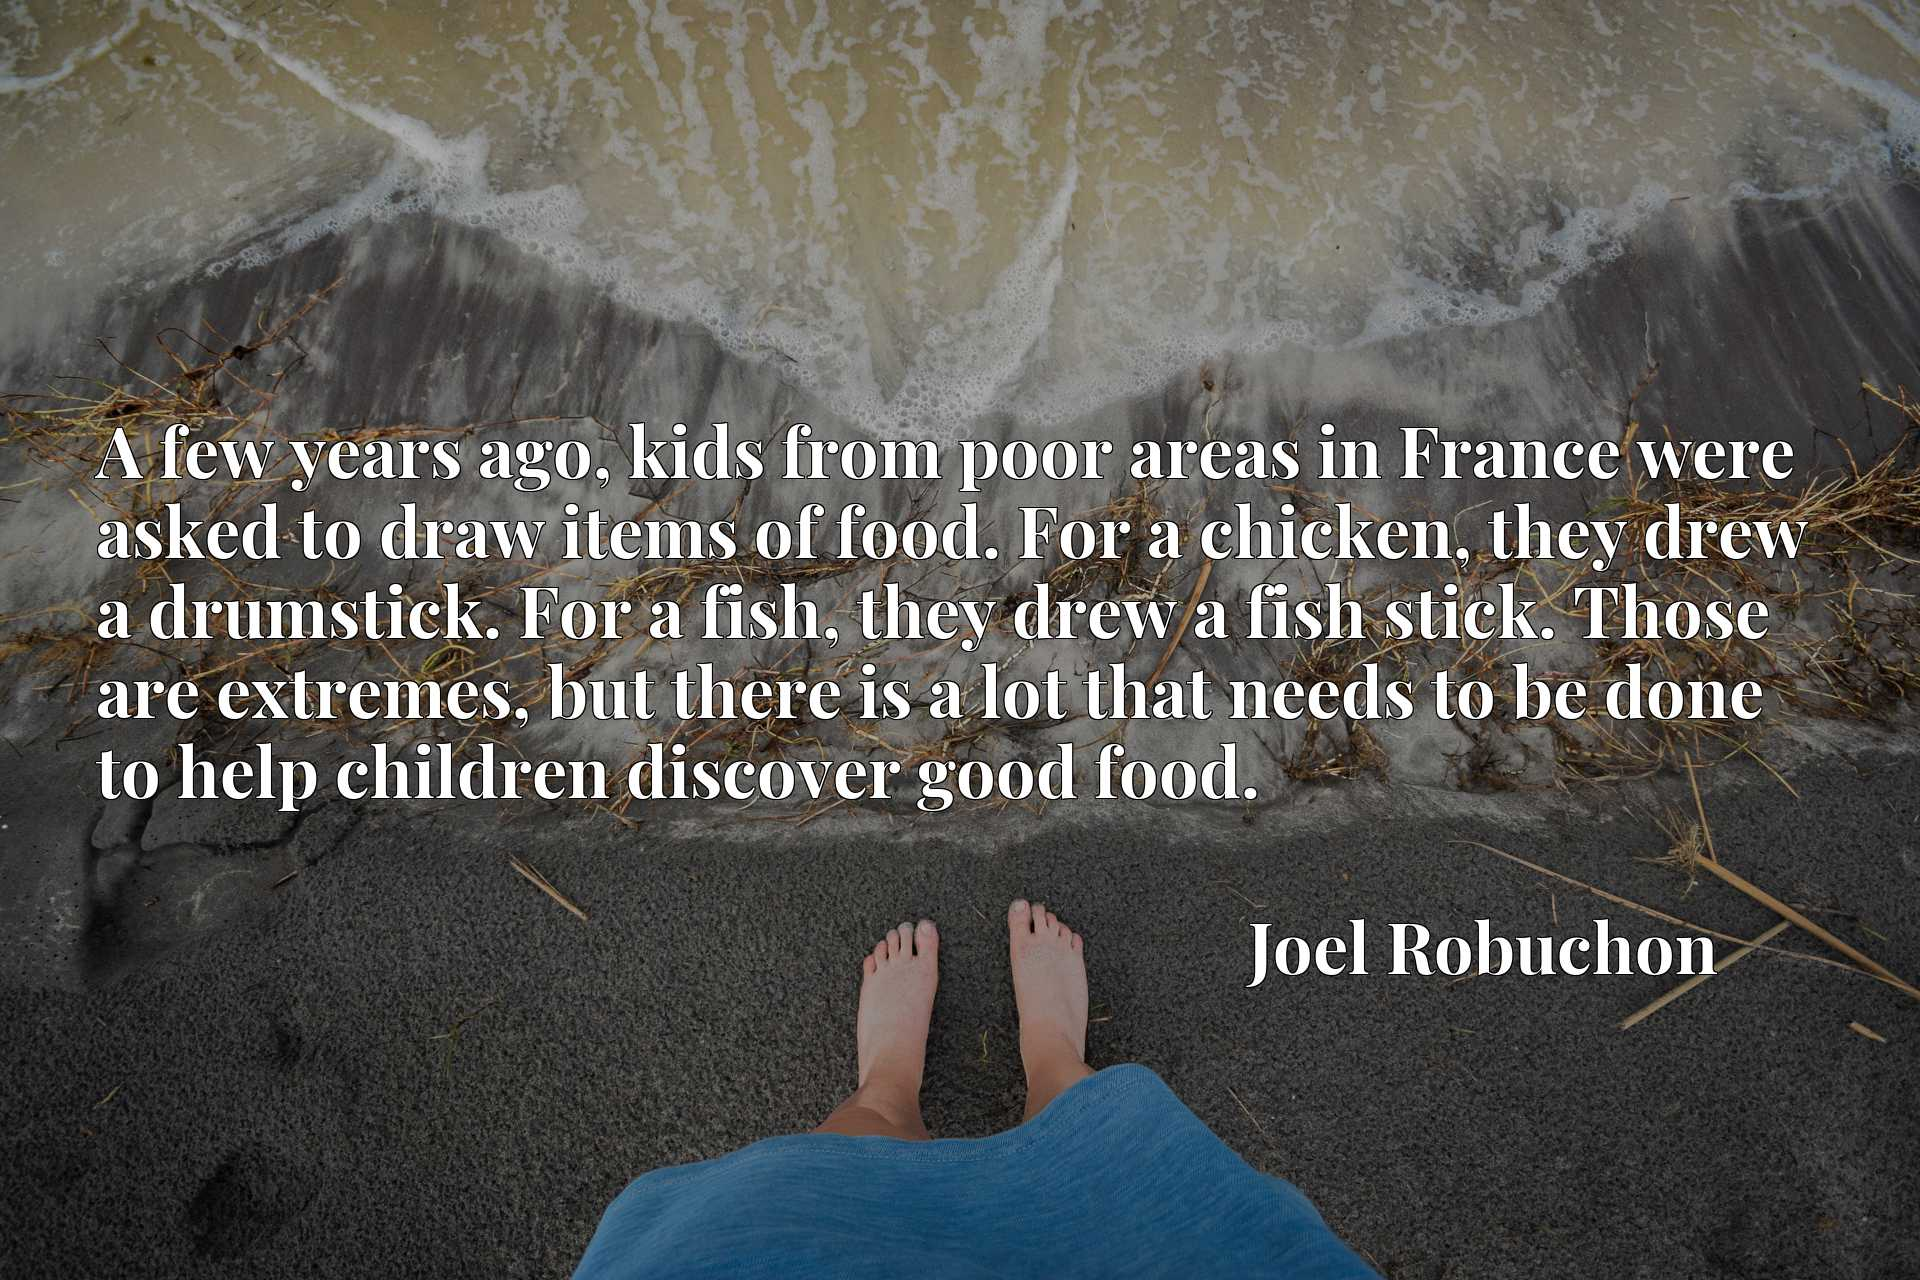 A few years ago, kids from poor areas in France were asked to draw items of food. For a chicken, they drew a drumstick. For a fish, they drew a fish stick. Those are extremes, but there is a lot that needs to be done to help children discover good food.